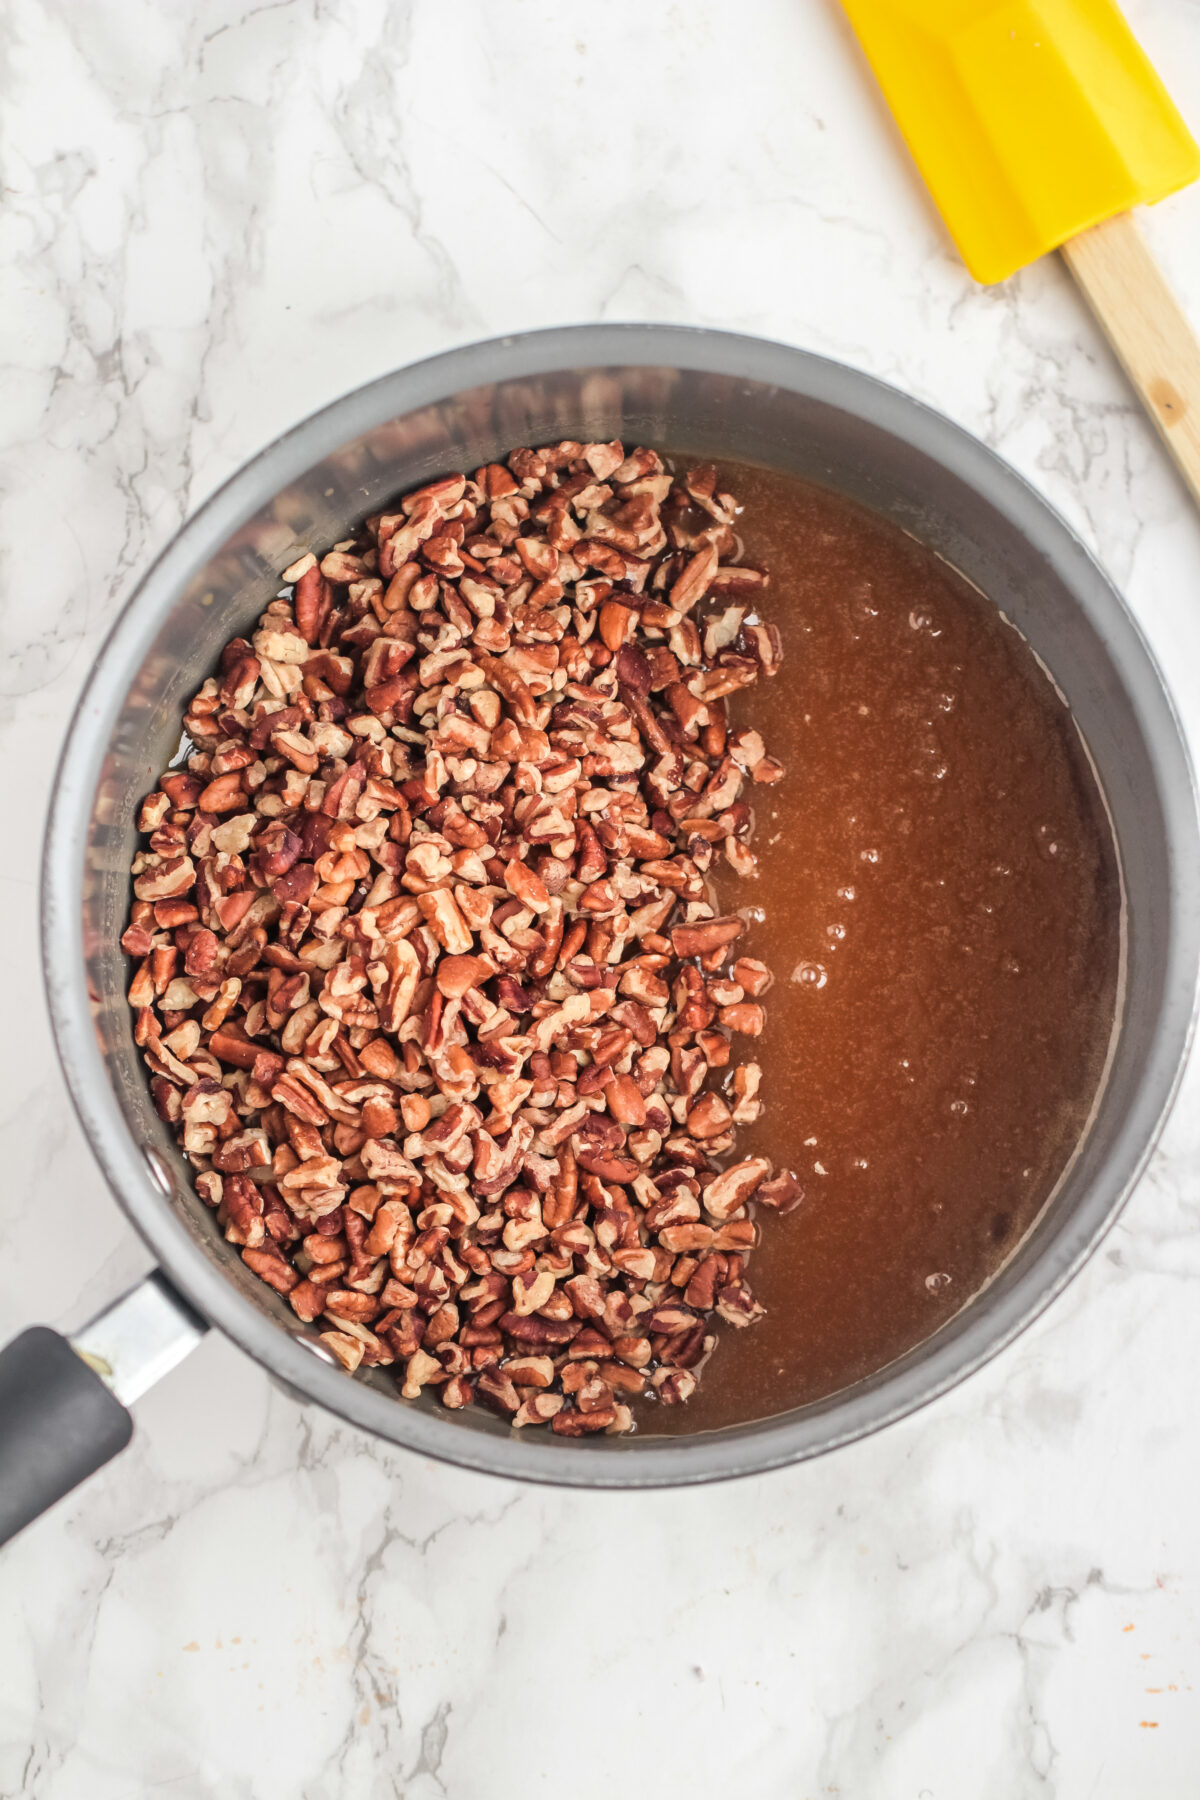 pecans being added to syrup.